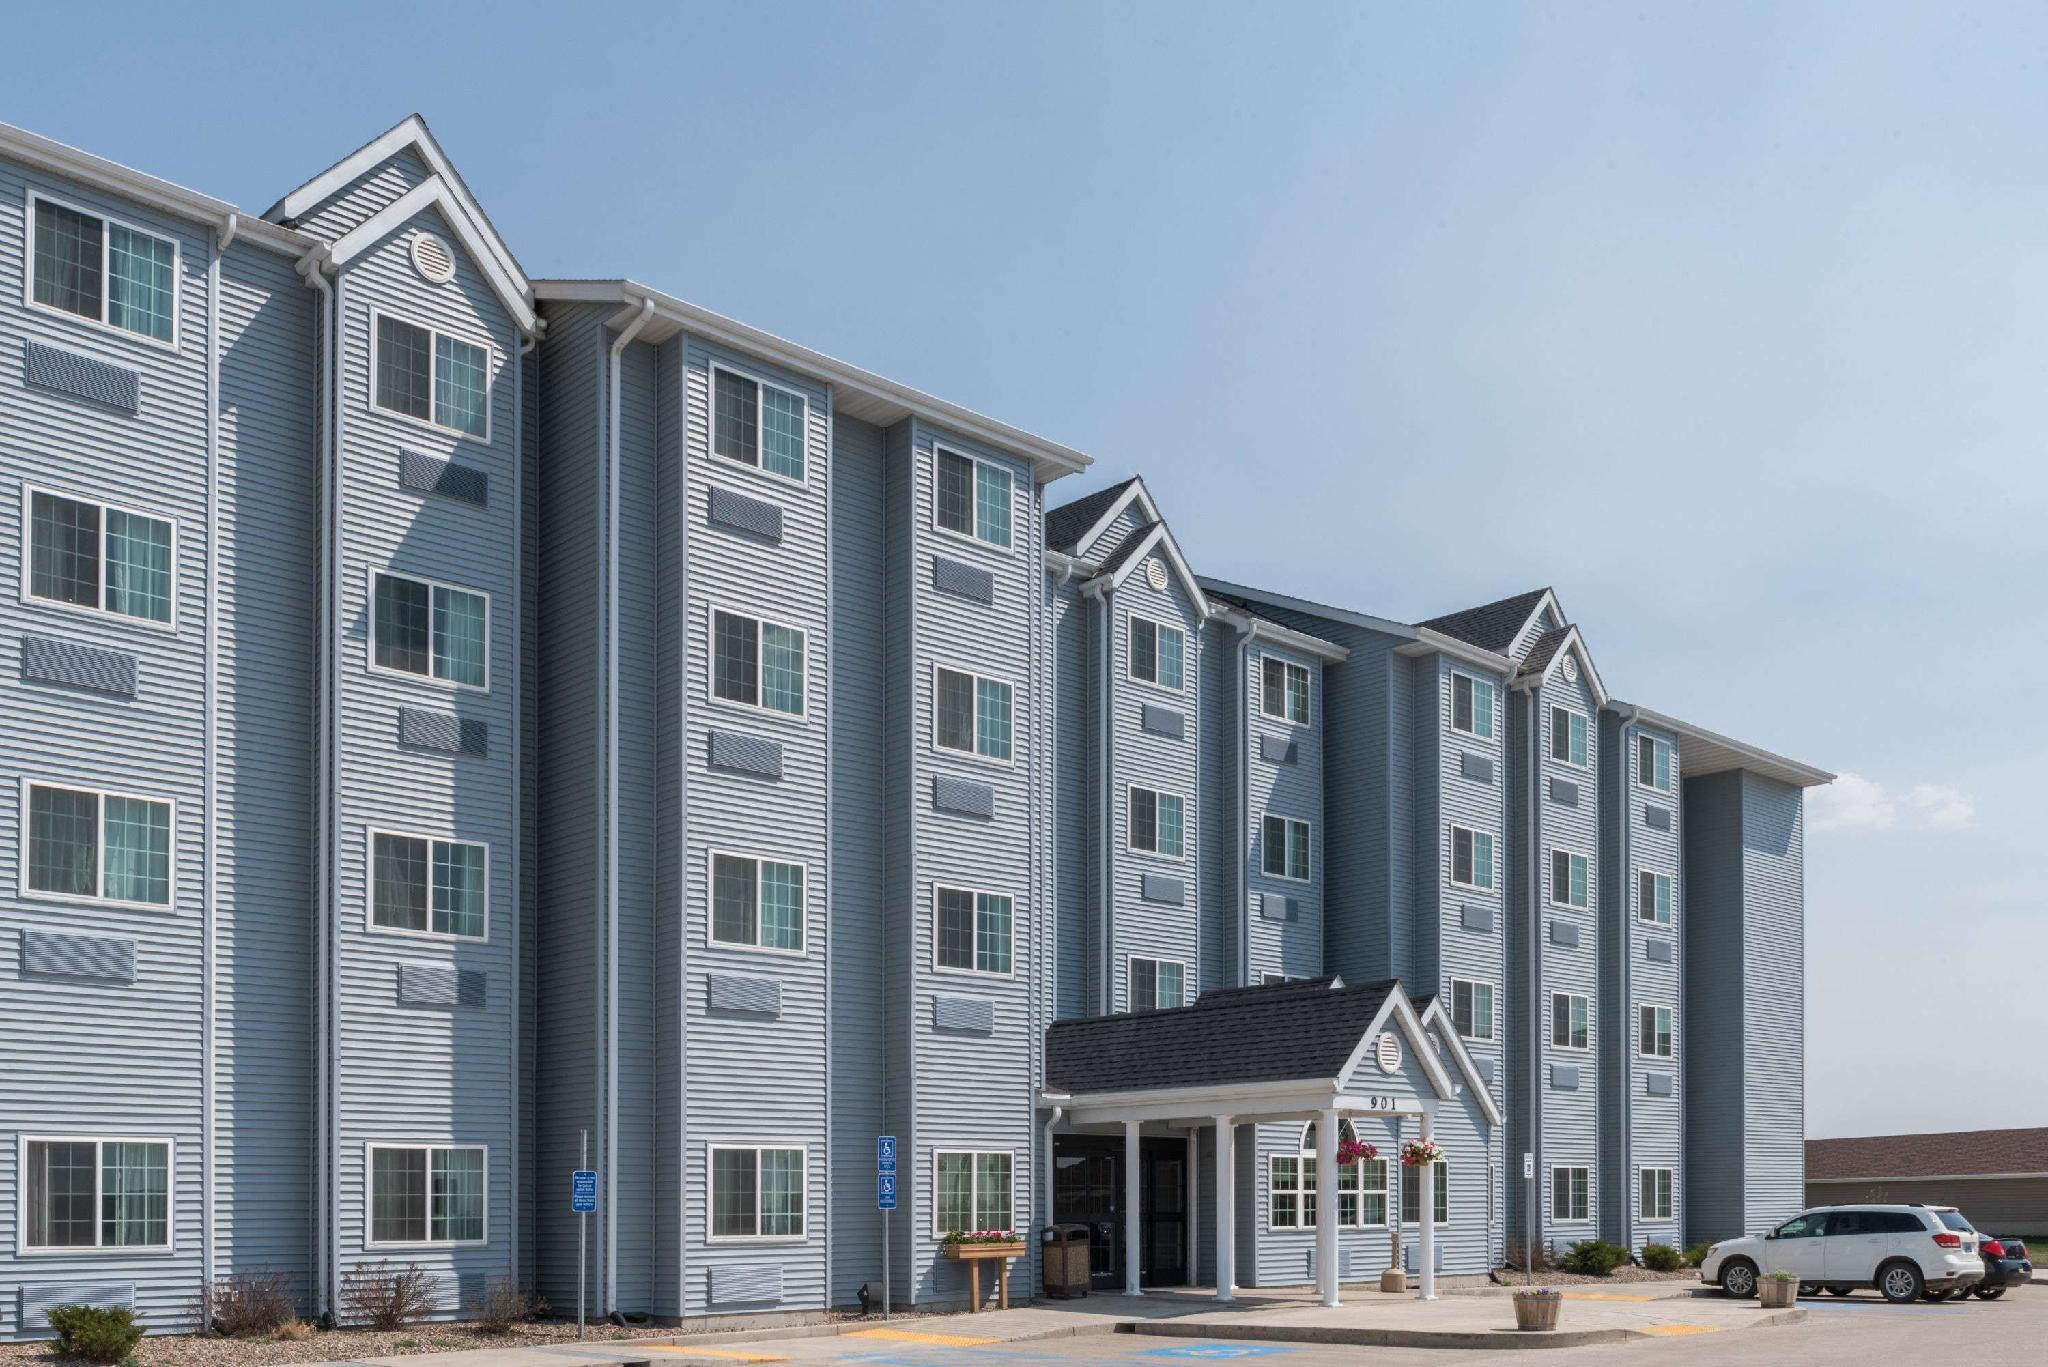 Microtel Inn And Suites By Wyndham Stanley